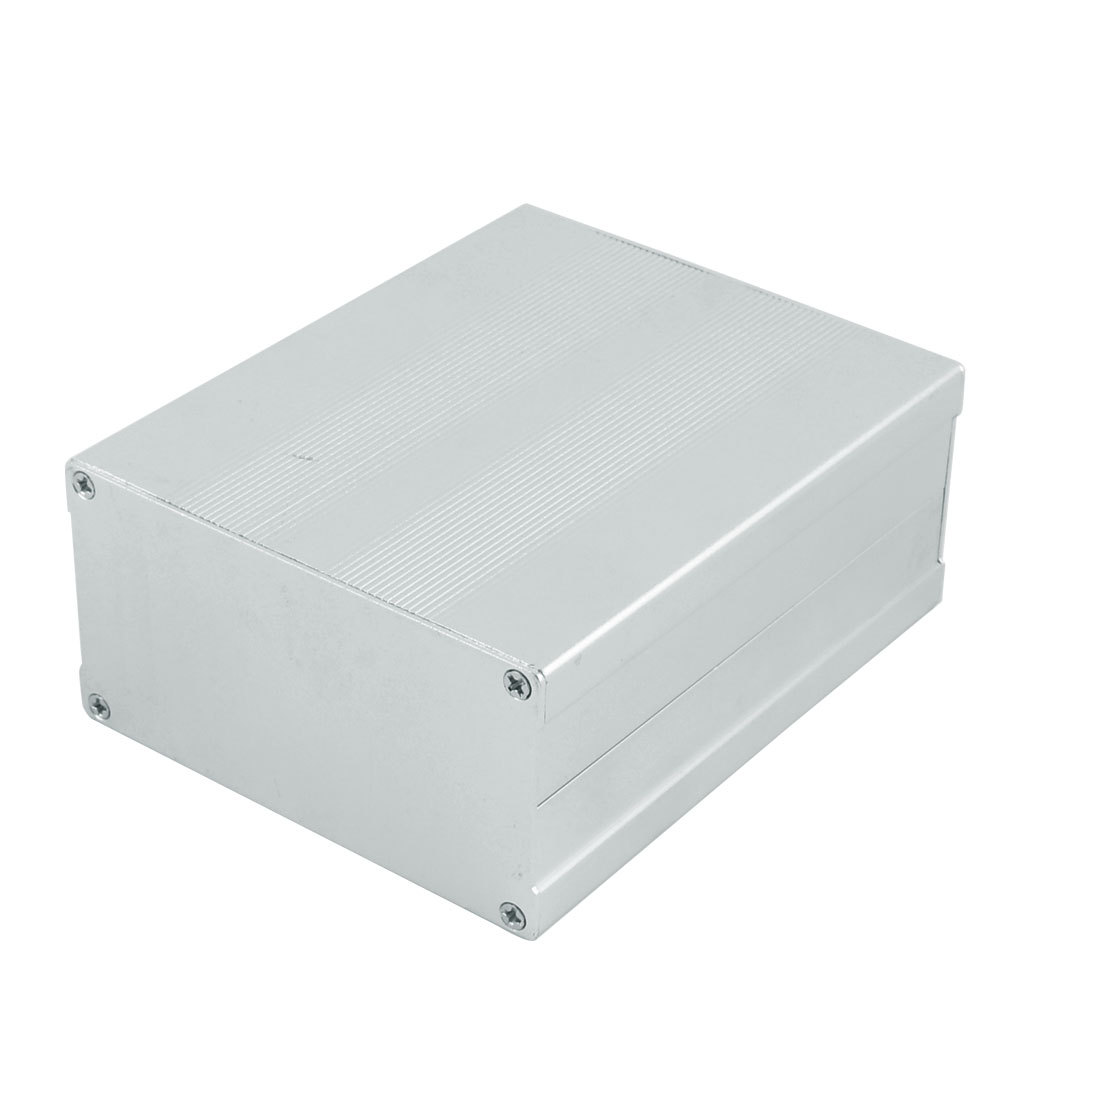 133 x 106 x 55mm Multi-purpose Electronic Extruded Aluminum Enclosure Silver Tone